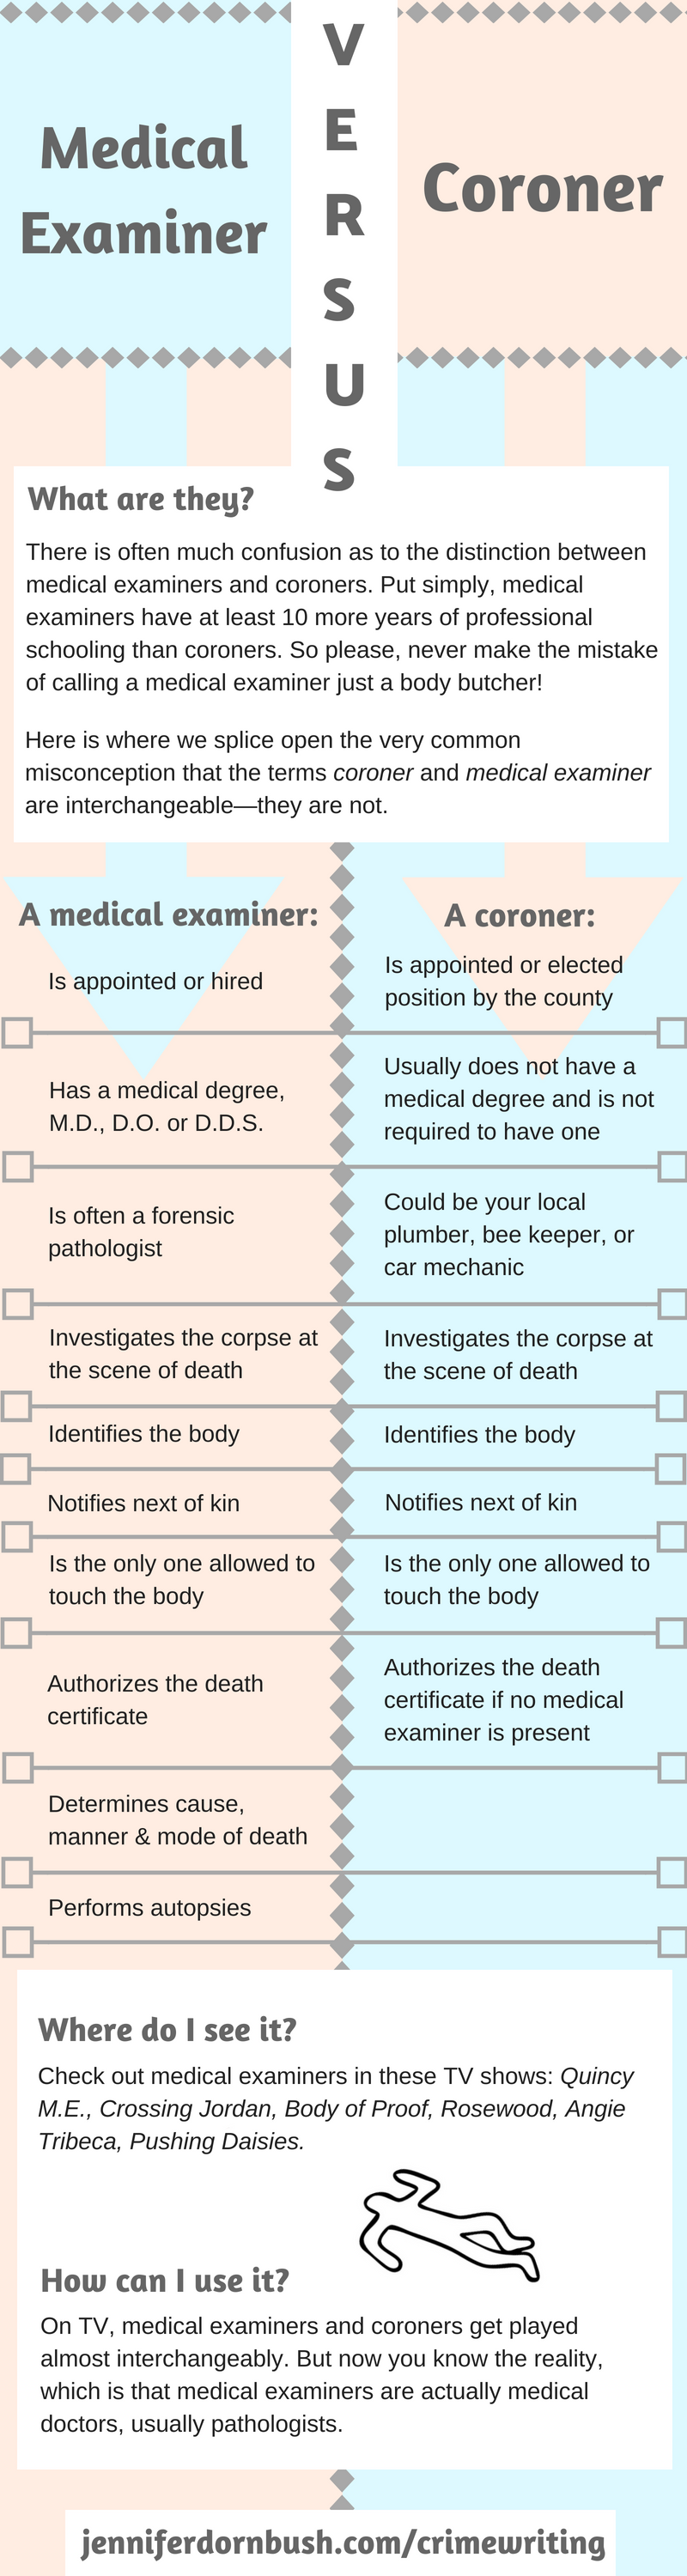 Medical Examiner vs Coroner-2.png